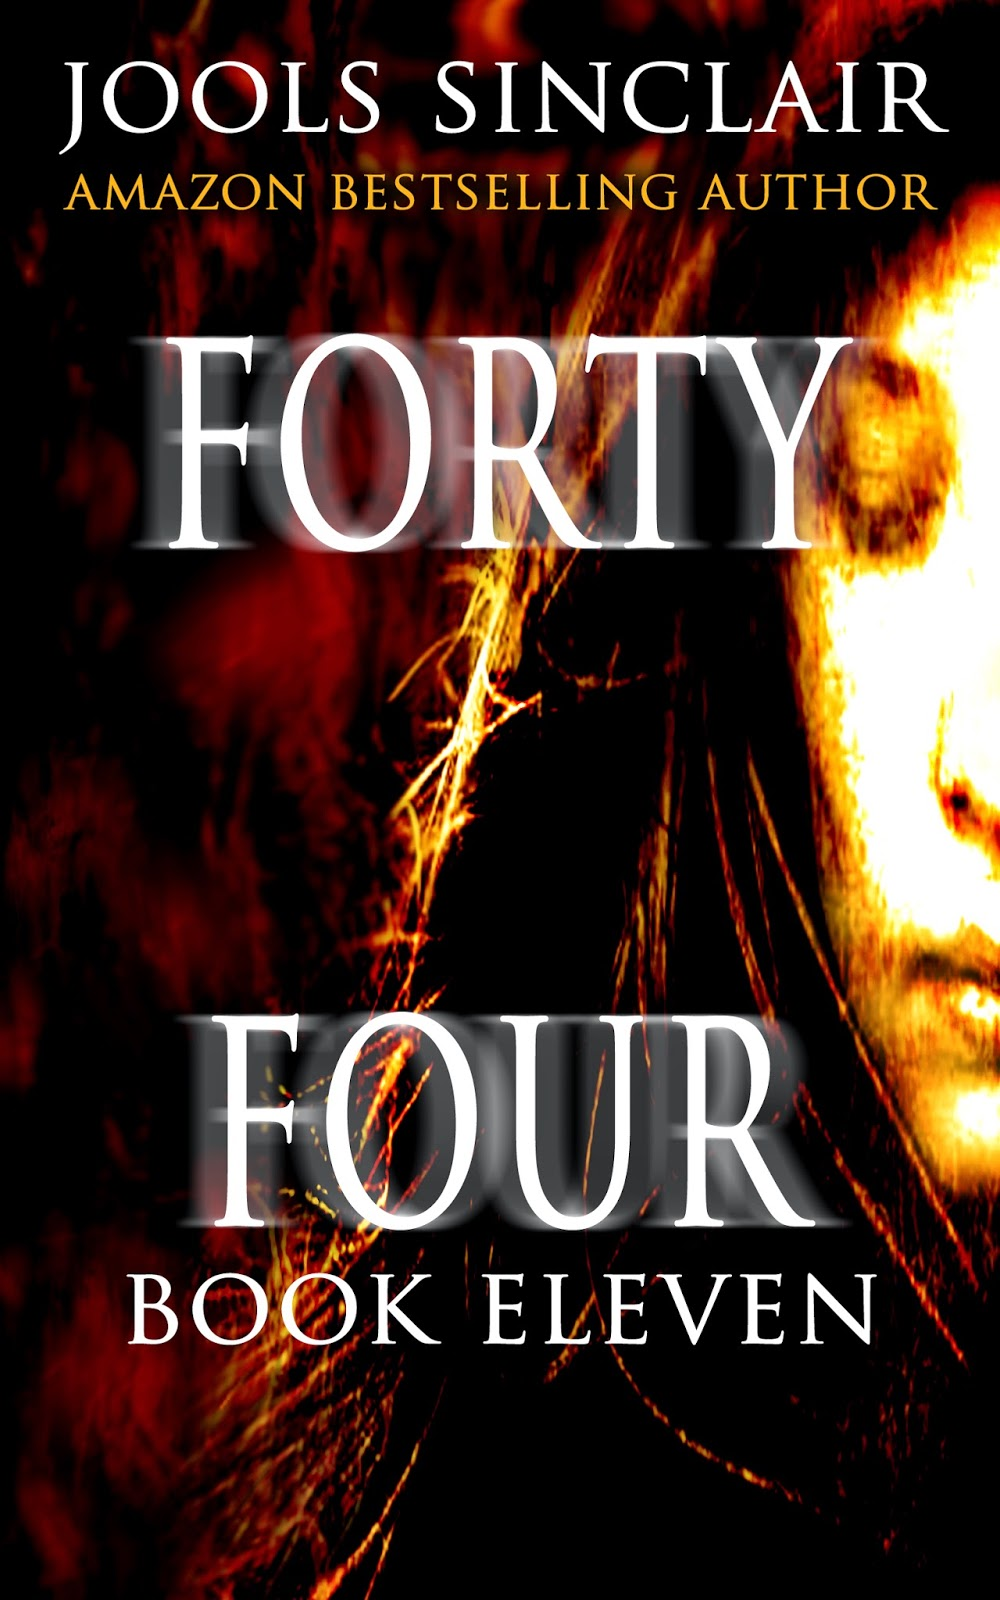 http://www.amazon.com/Forty-Four-Book-Eleven-44-11-ebook/dp/B00Q8WOWOE/ref=sr_1_1?s=digital-text&ie=UTF8&qid=1417109310&sr=1-1&keywords=forty-four+book+eleven